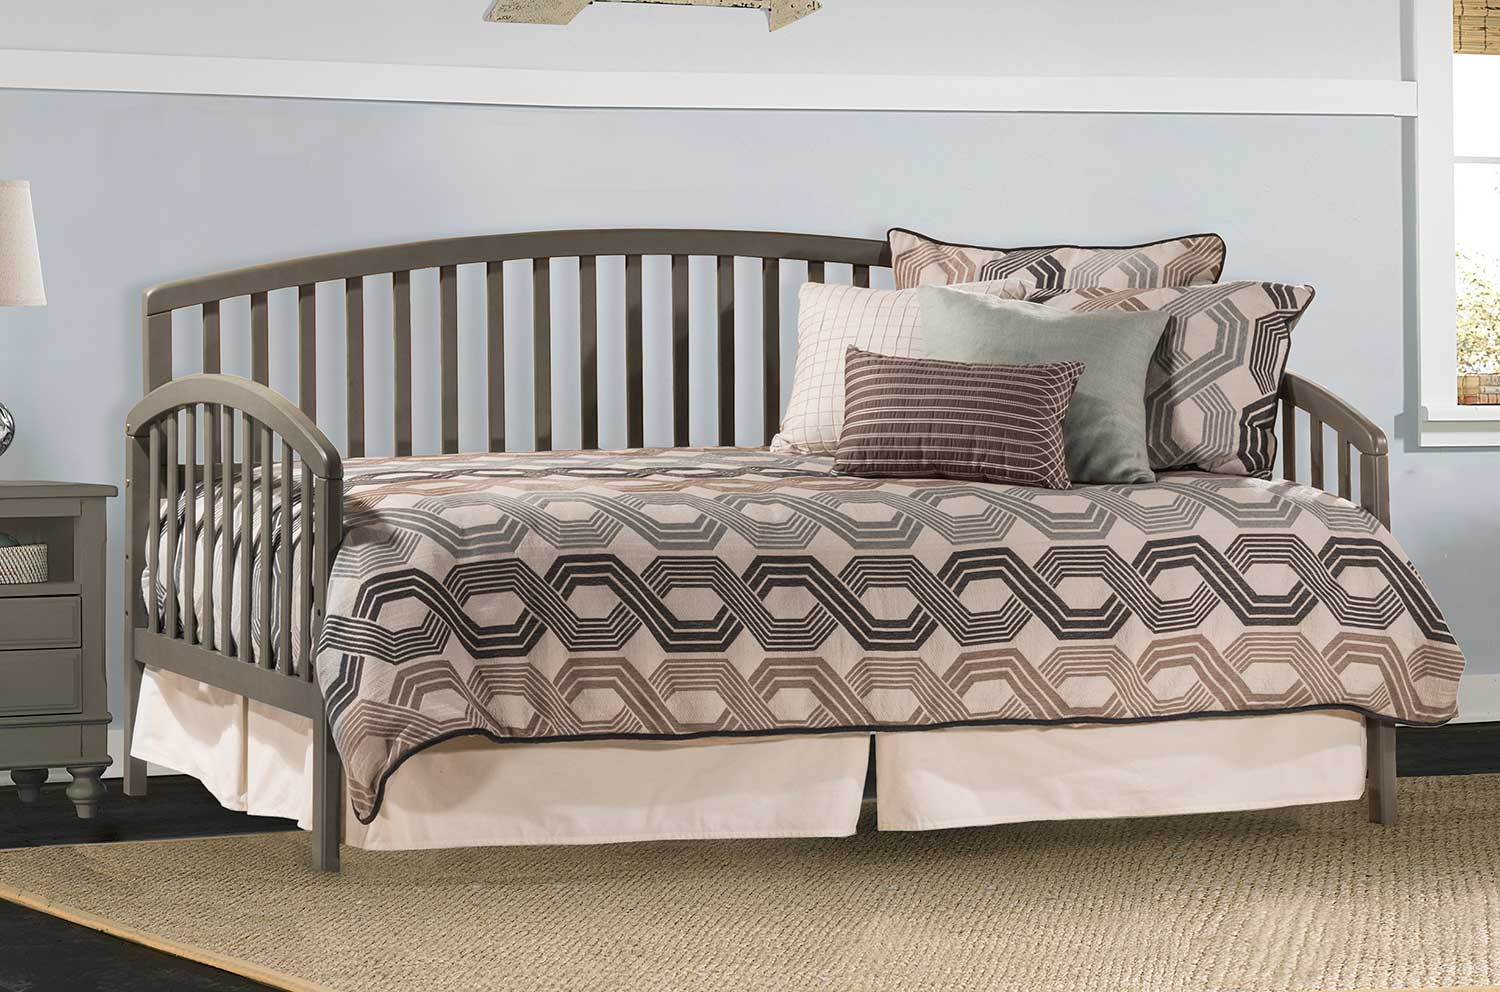 Hillsdale Carolina Daybed with Suspension Deck and Trundle - Stone